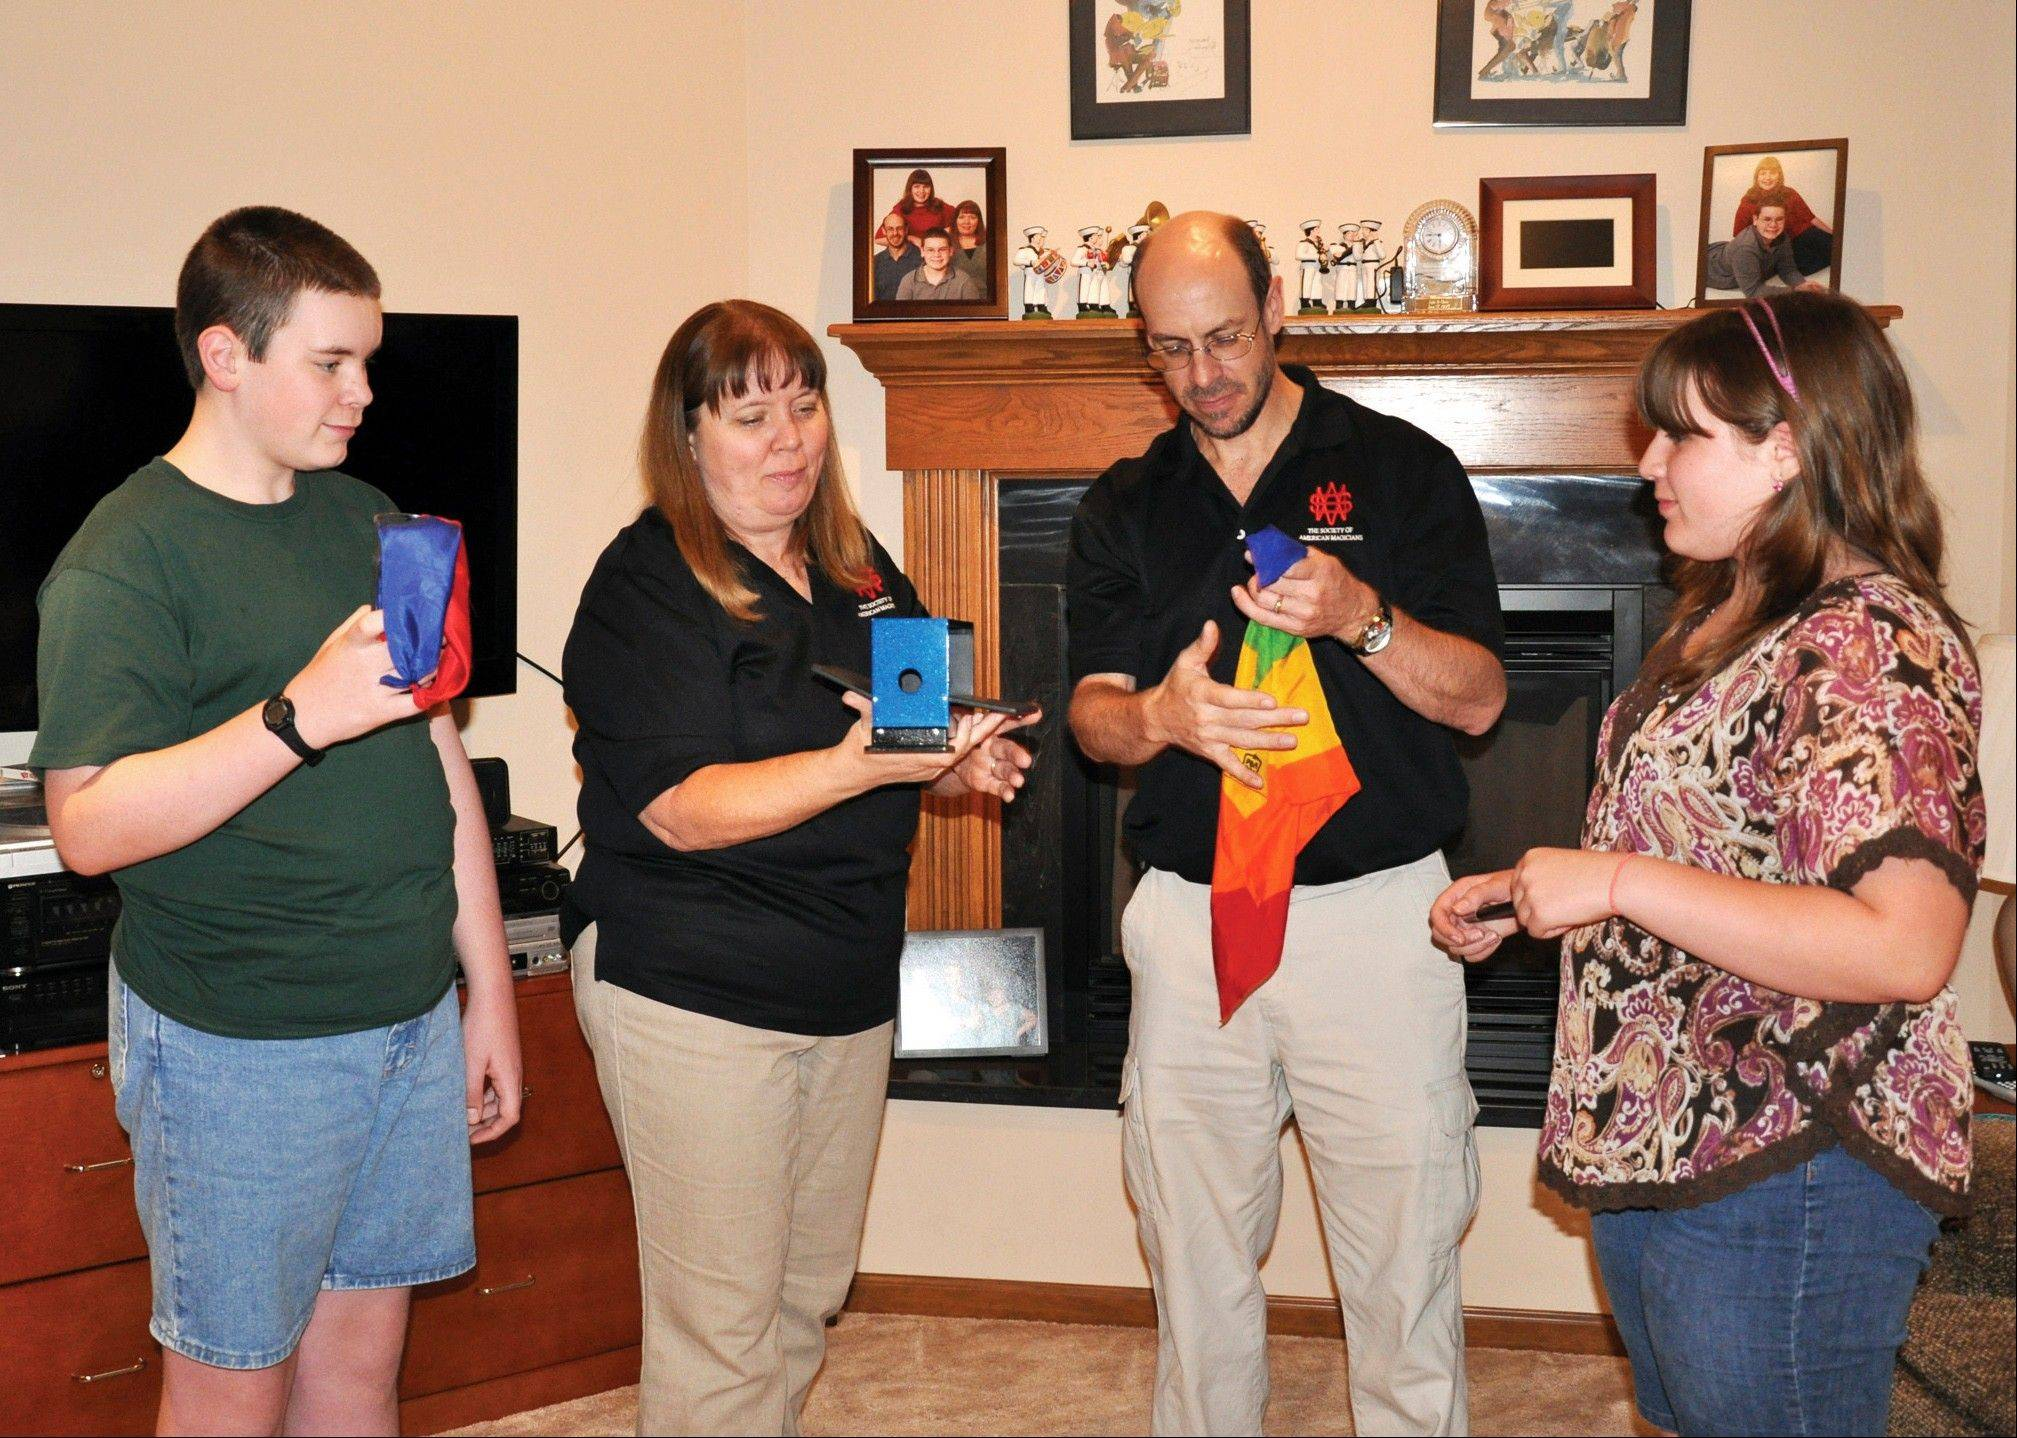 The Bontjes family members, from left, John, Julie, Christopher and Jil, practice magic tricks in the living room of their home in Westville